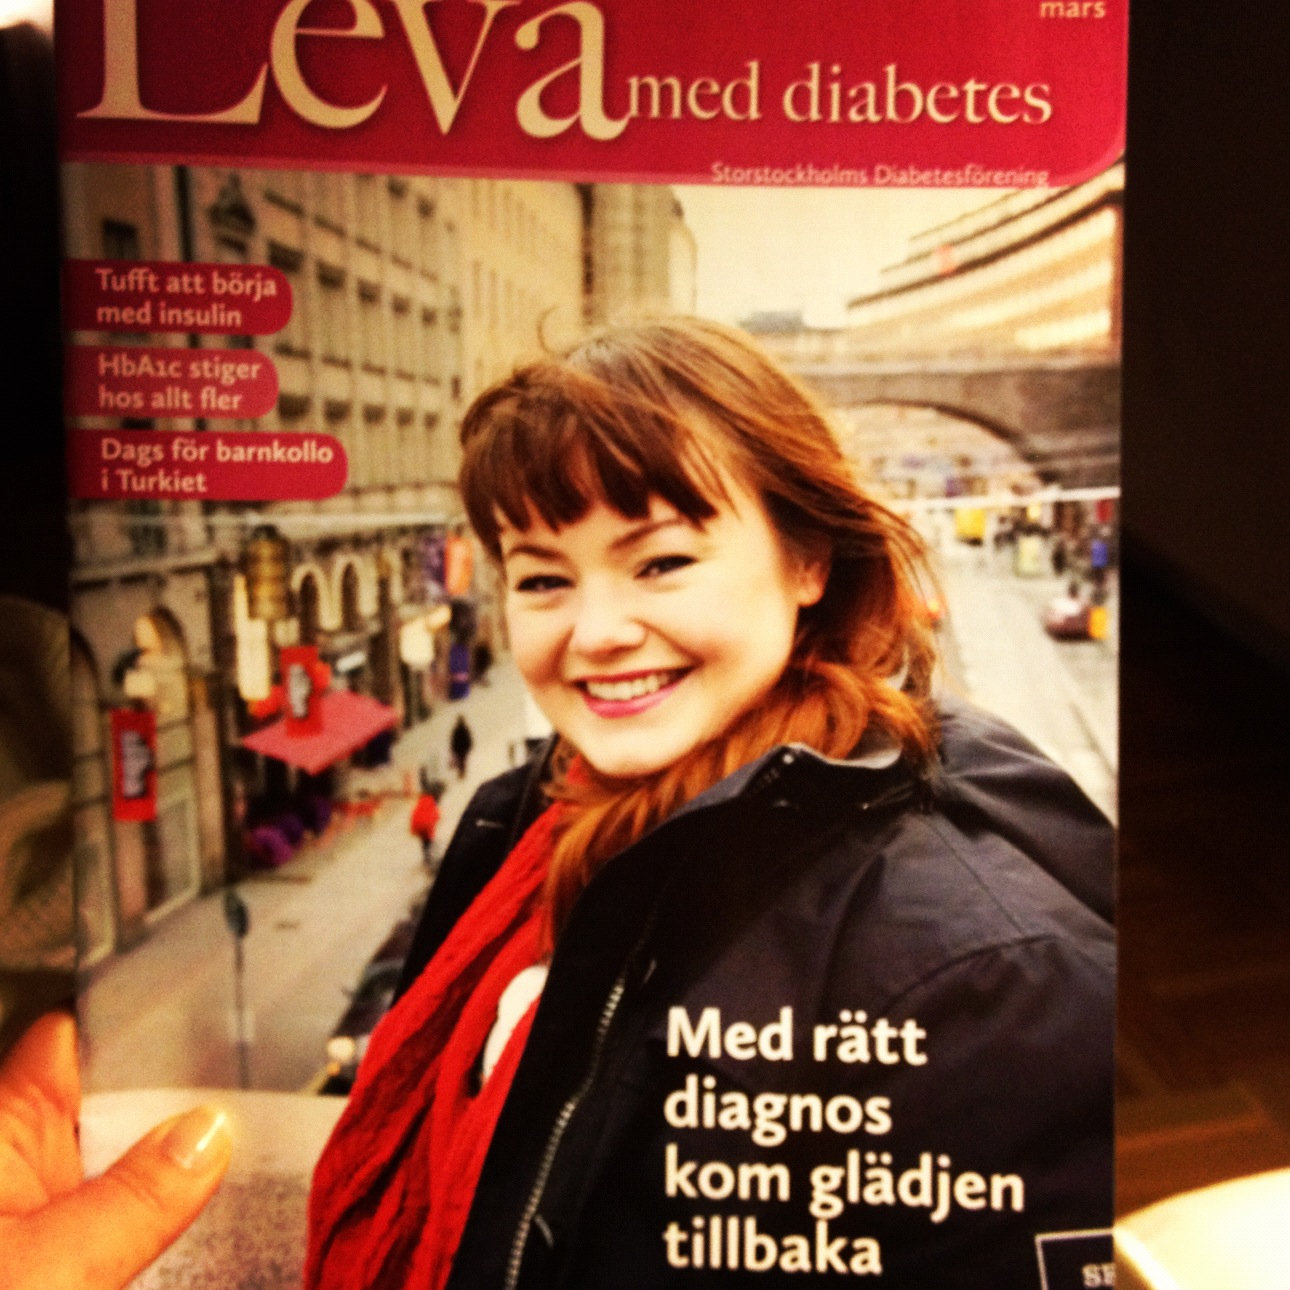 Artikel om gastropares i Leva med diabetes, Storstockholms diabetesfrenings tidnign